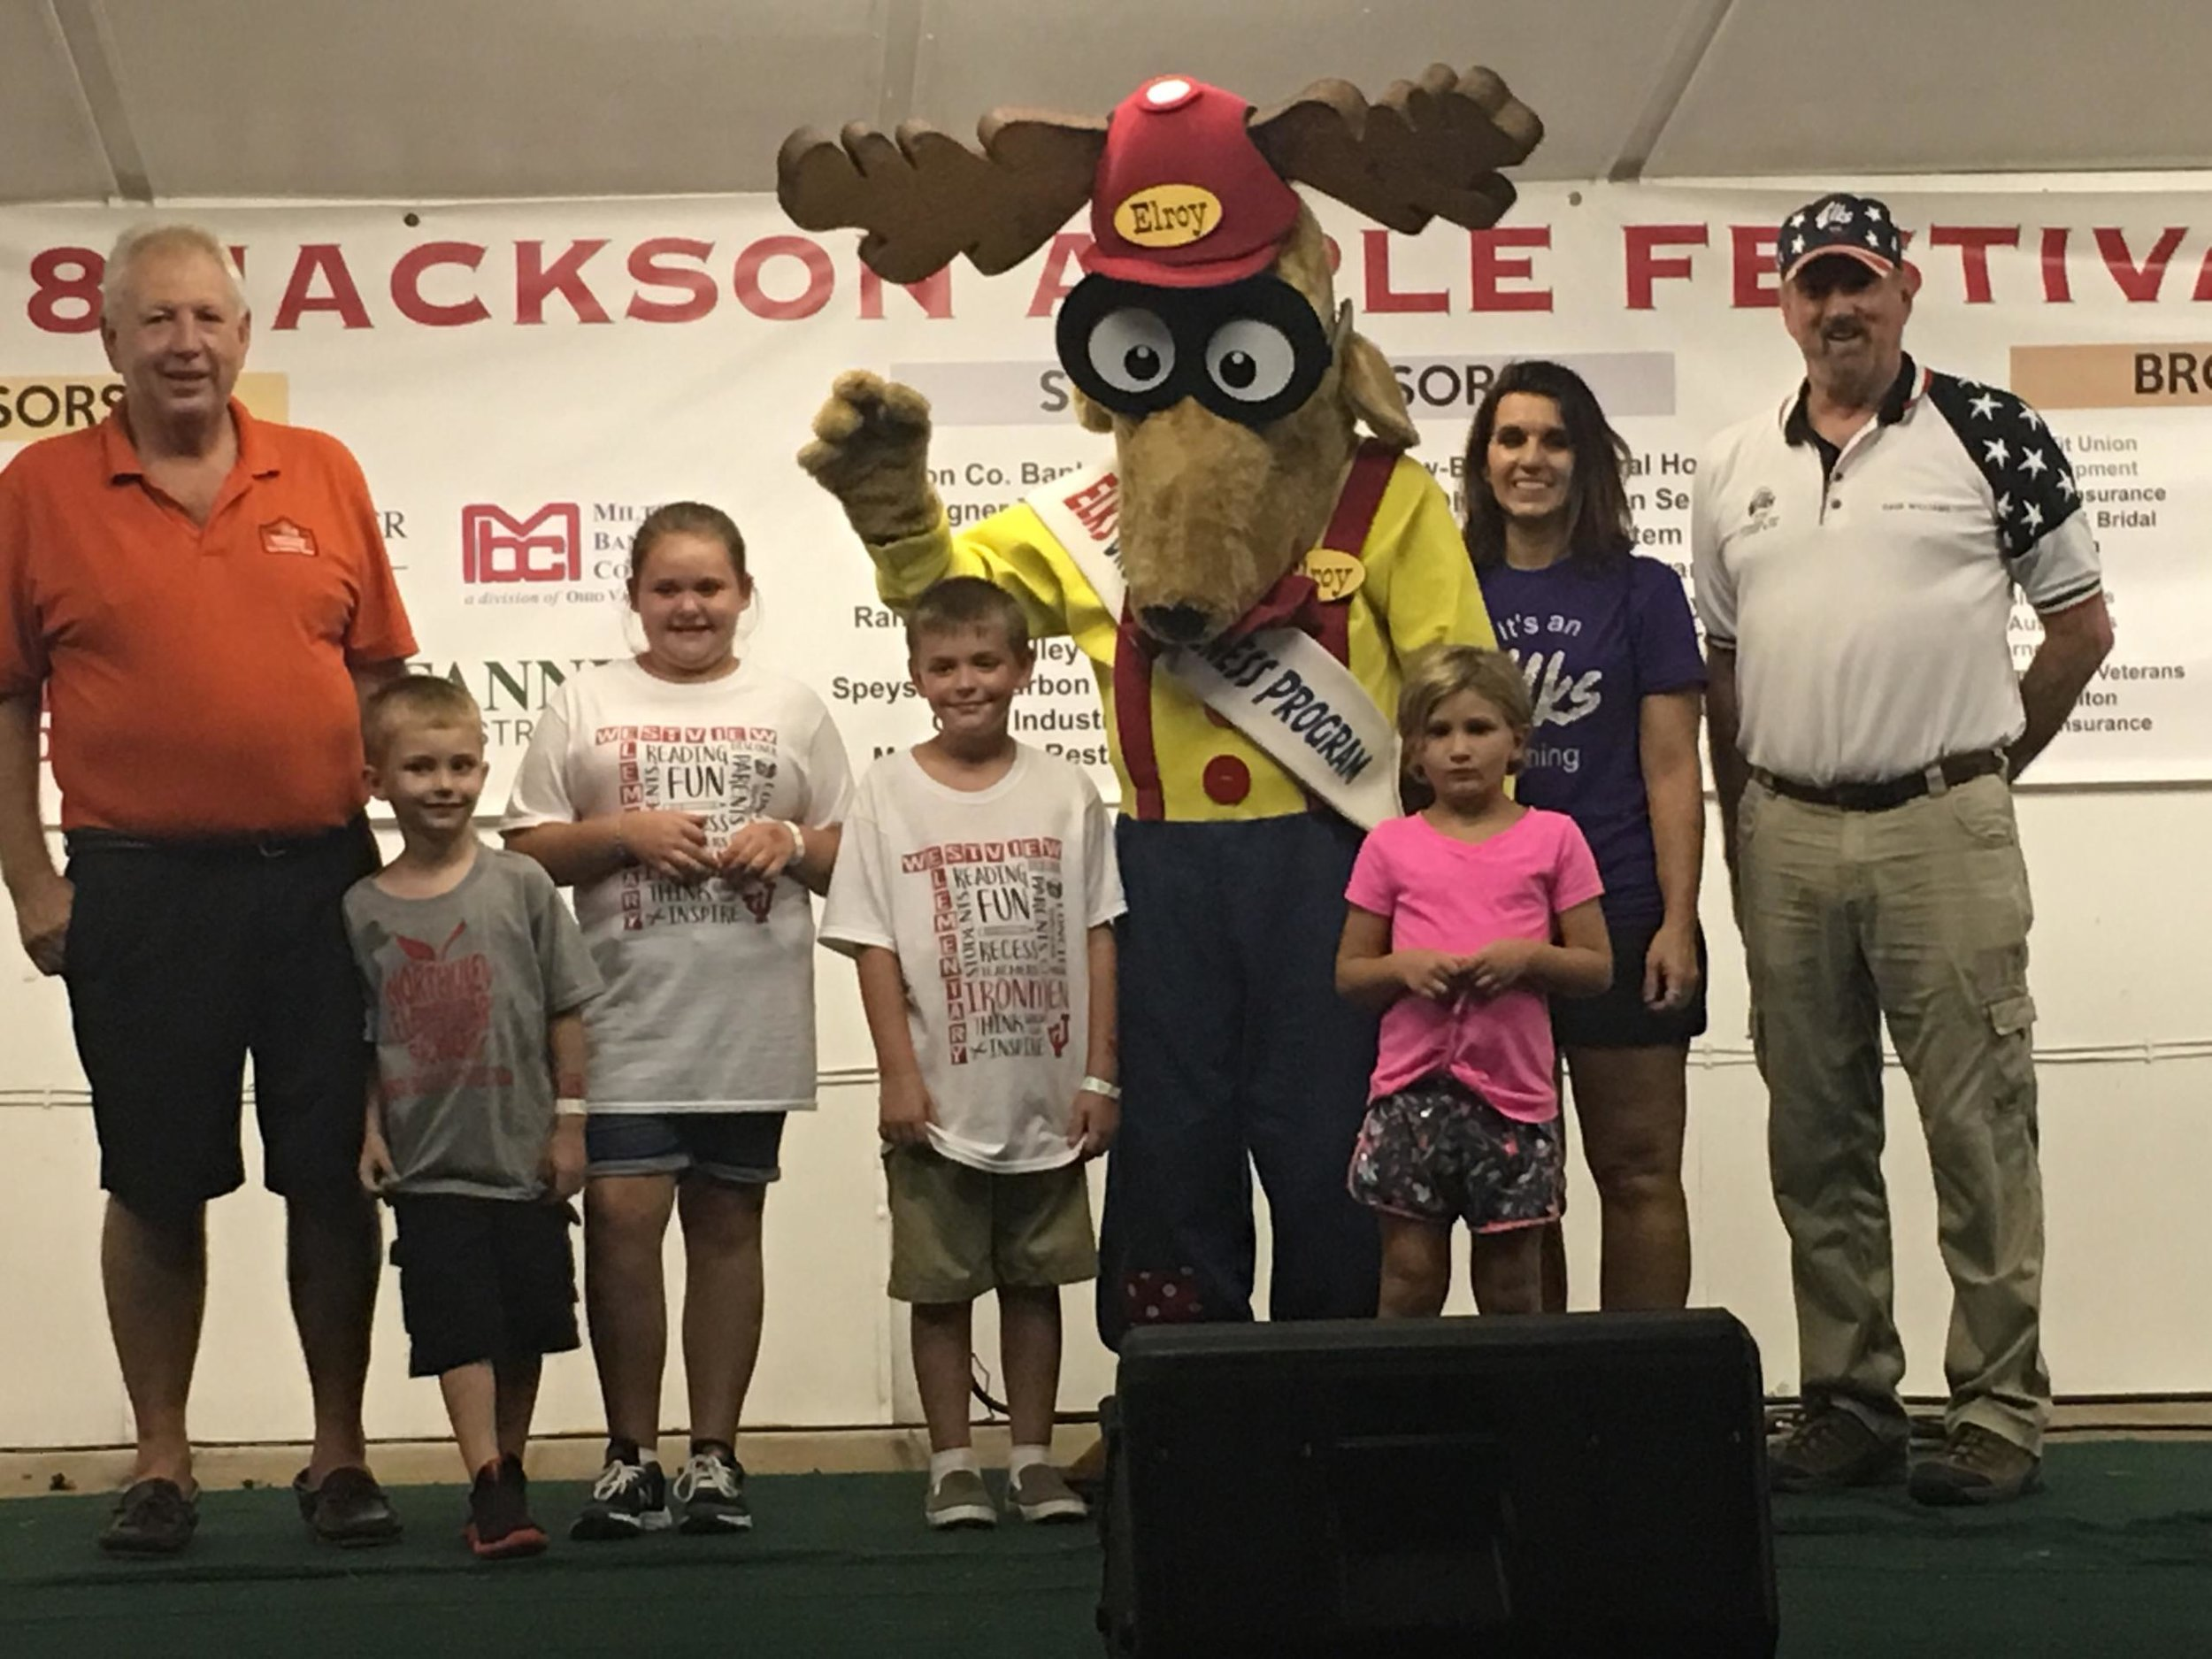 Group picture with Elroy are Keith Denny-State Elks Officer, Elroy (Dallas Lloyd, Leading Knight), Dorothy Riepenhoff-Elks member and orgainizer, Dave Williams-SC District Drug Awareness Chairman, and some area kids that just had to have a picture with Elroy the Elk